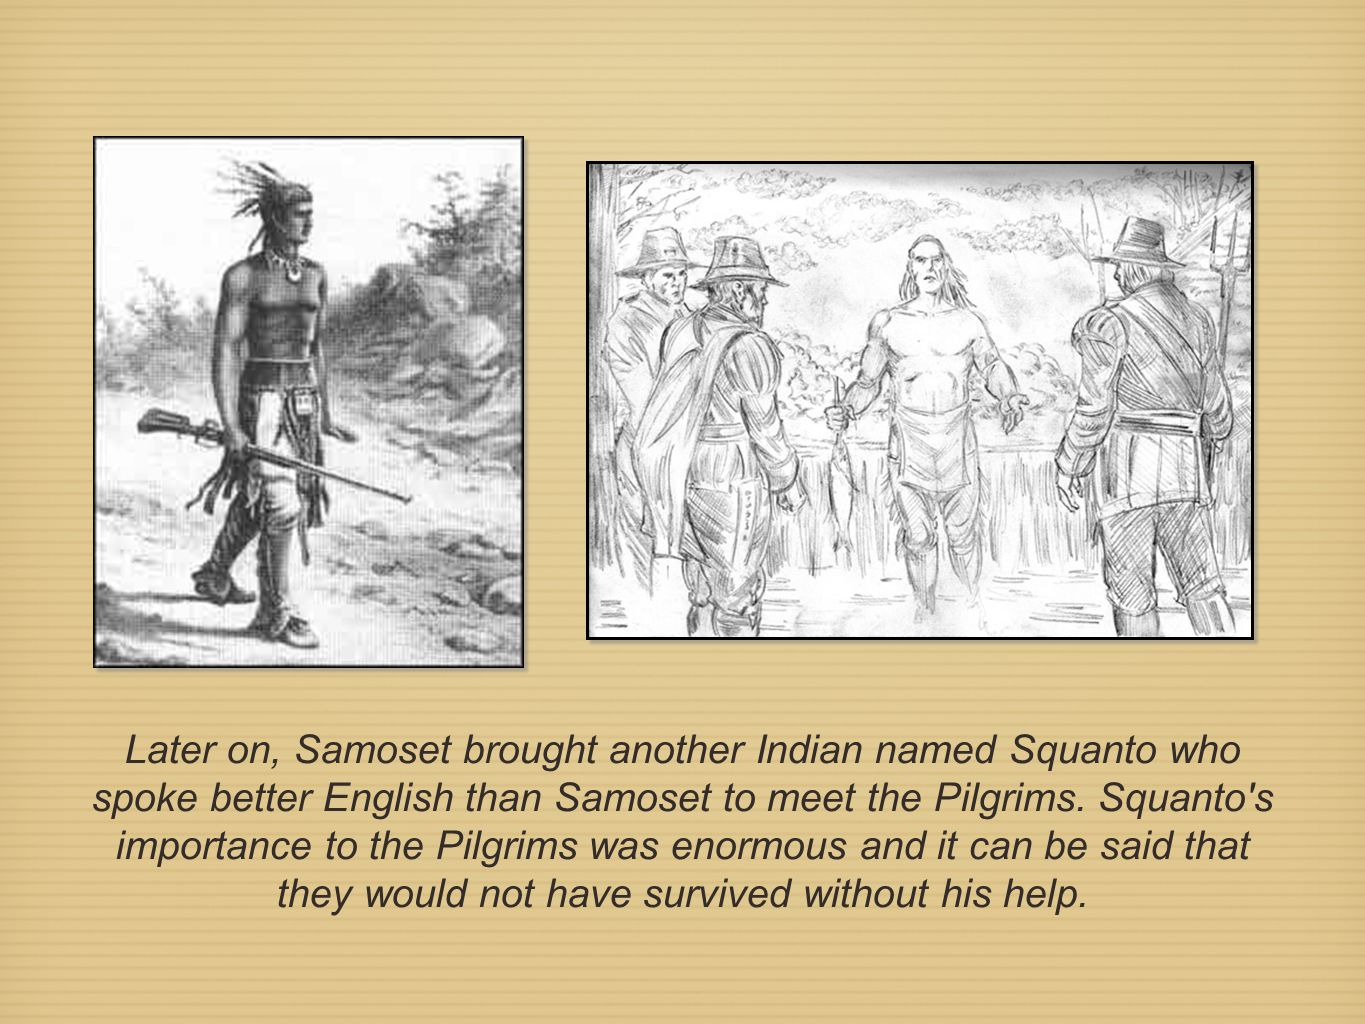 Later on, Samoset brought another Indian named Squanto who spoke better English than Samoset to meet the Pilgrims.